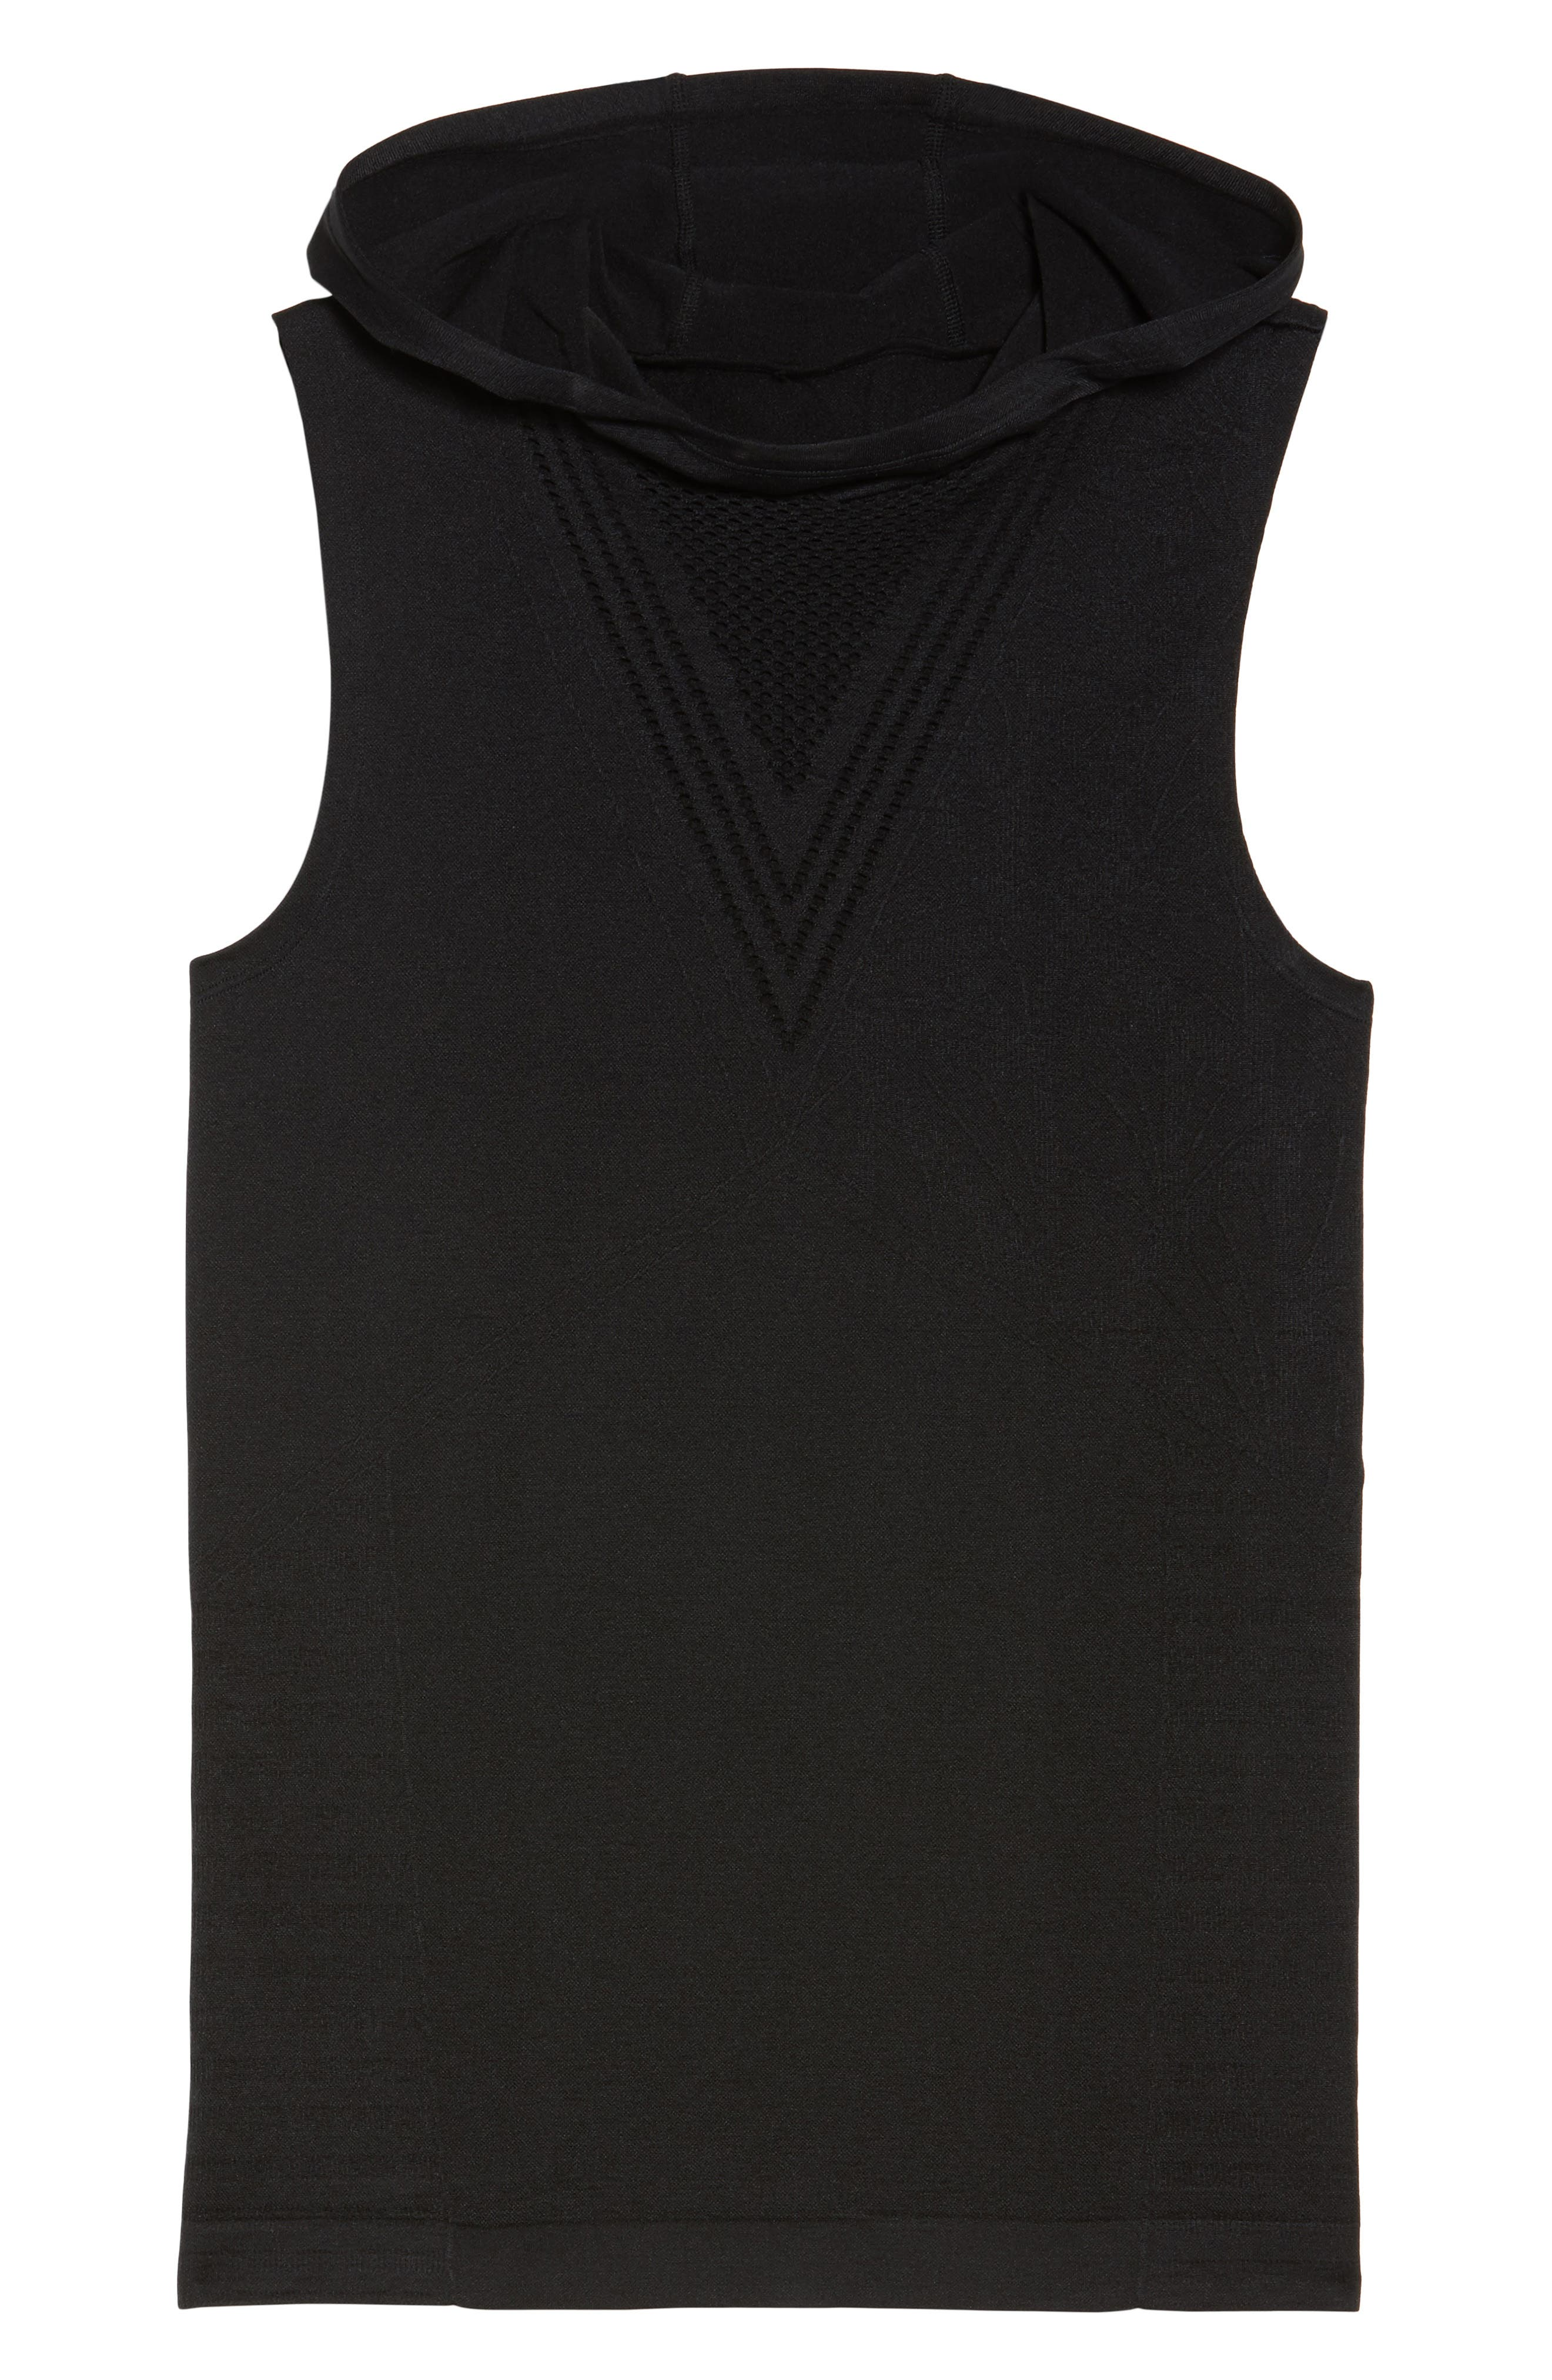 CLIMAWEAR,                             Velocity Sleeveless Hoodie,                             Alternate thumbnail 7, color,                             001